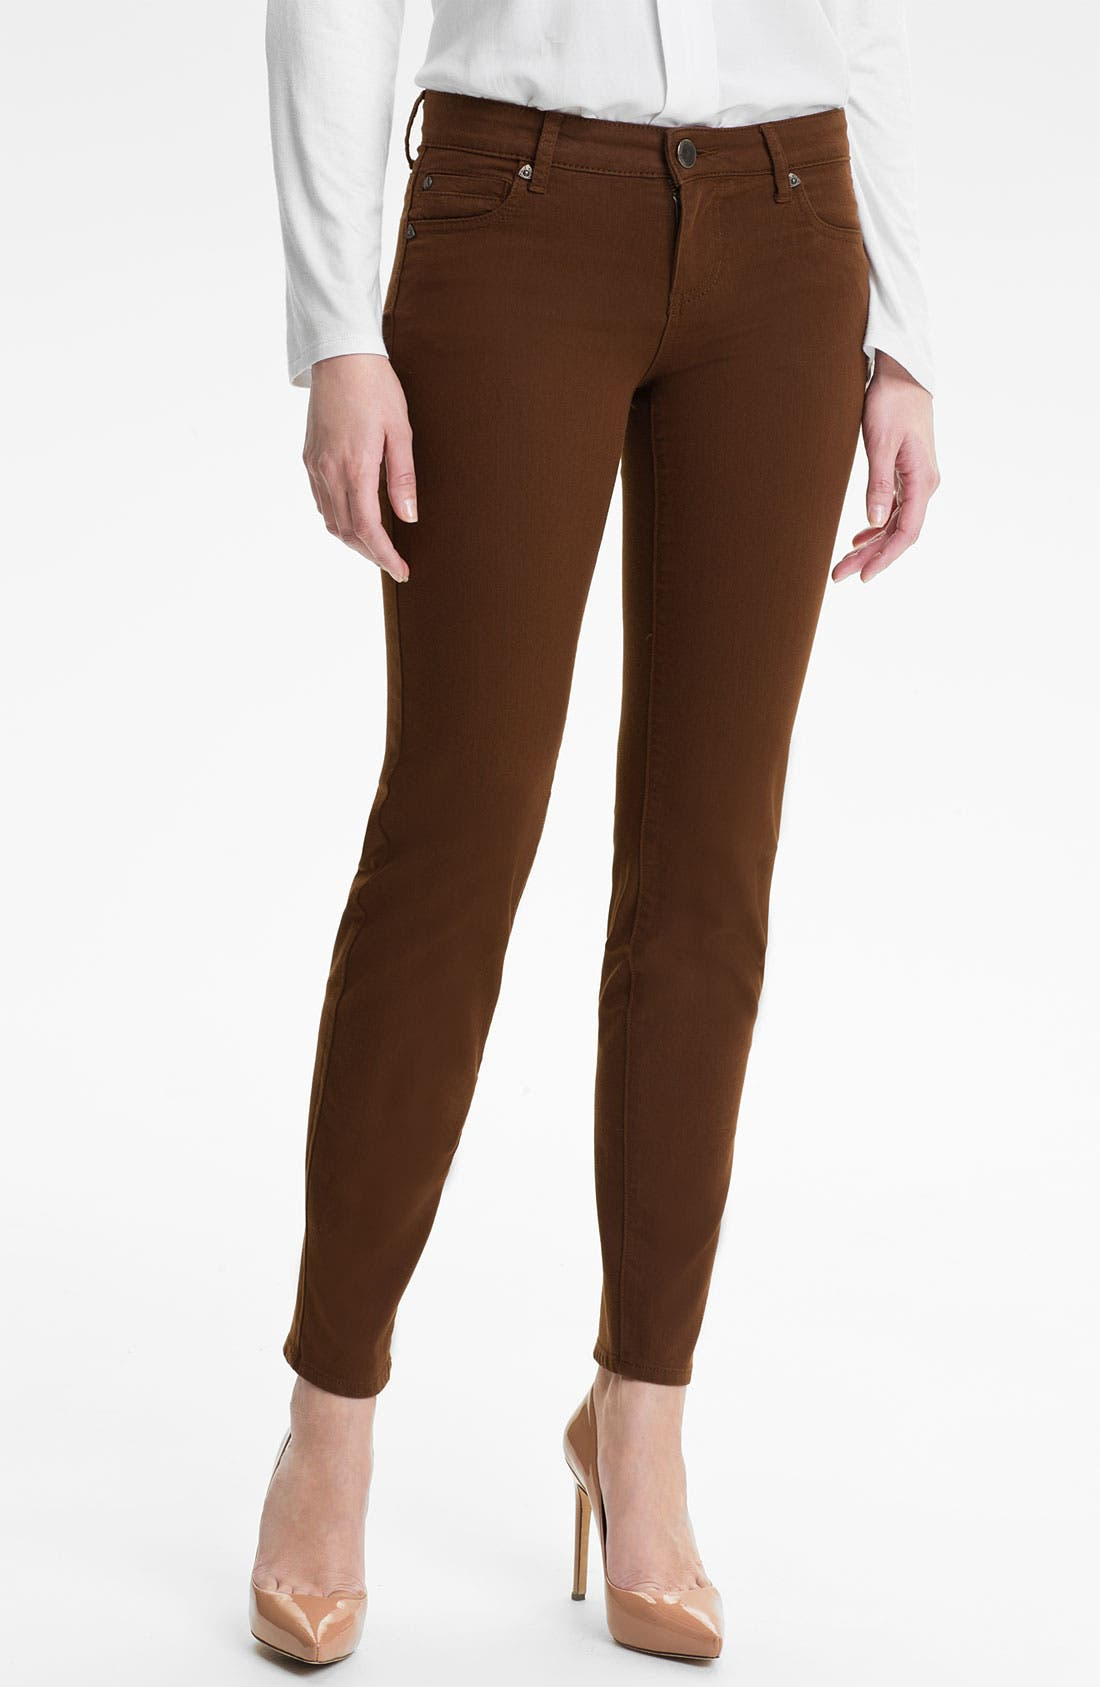 Main Image - KUT from the Kloth 'Diana' Colored Skinny Jeans